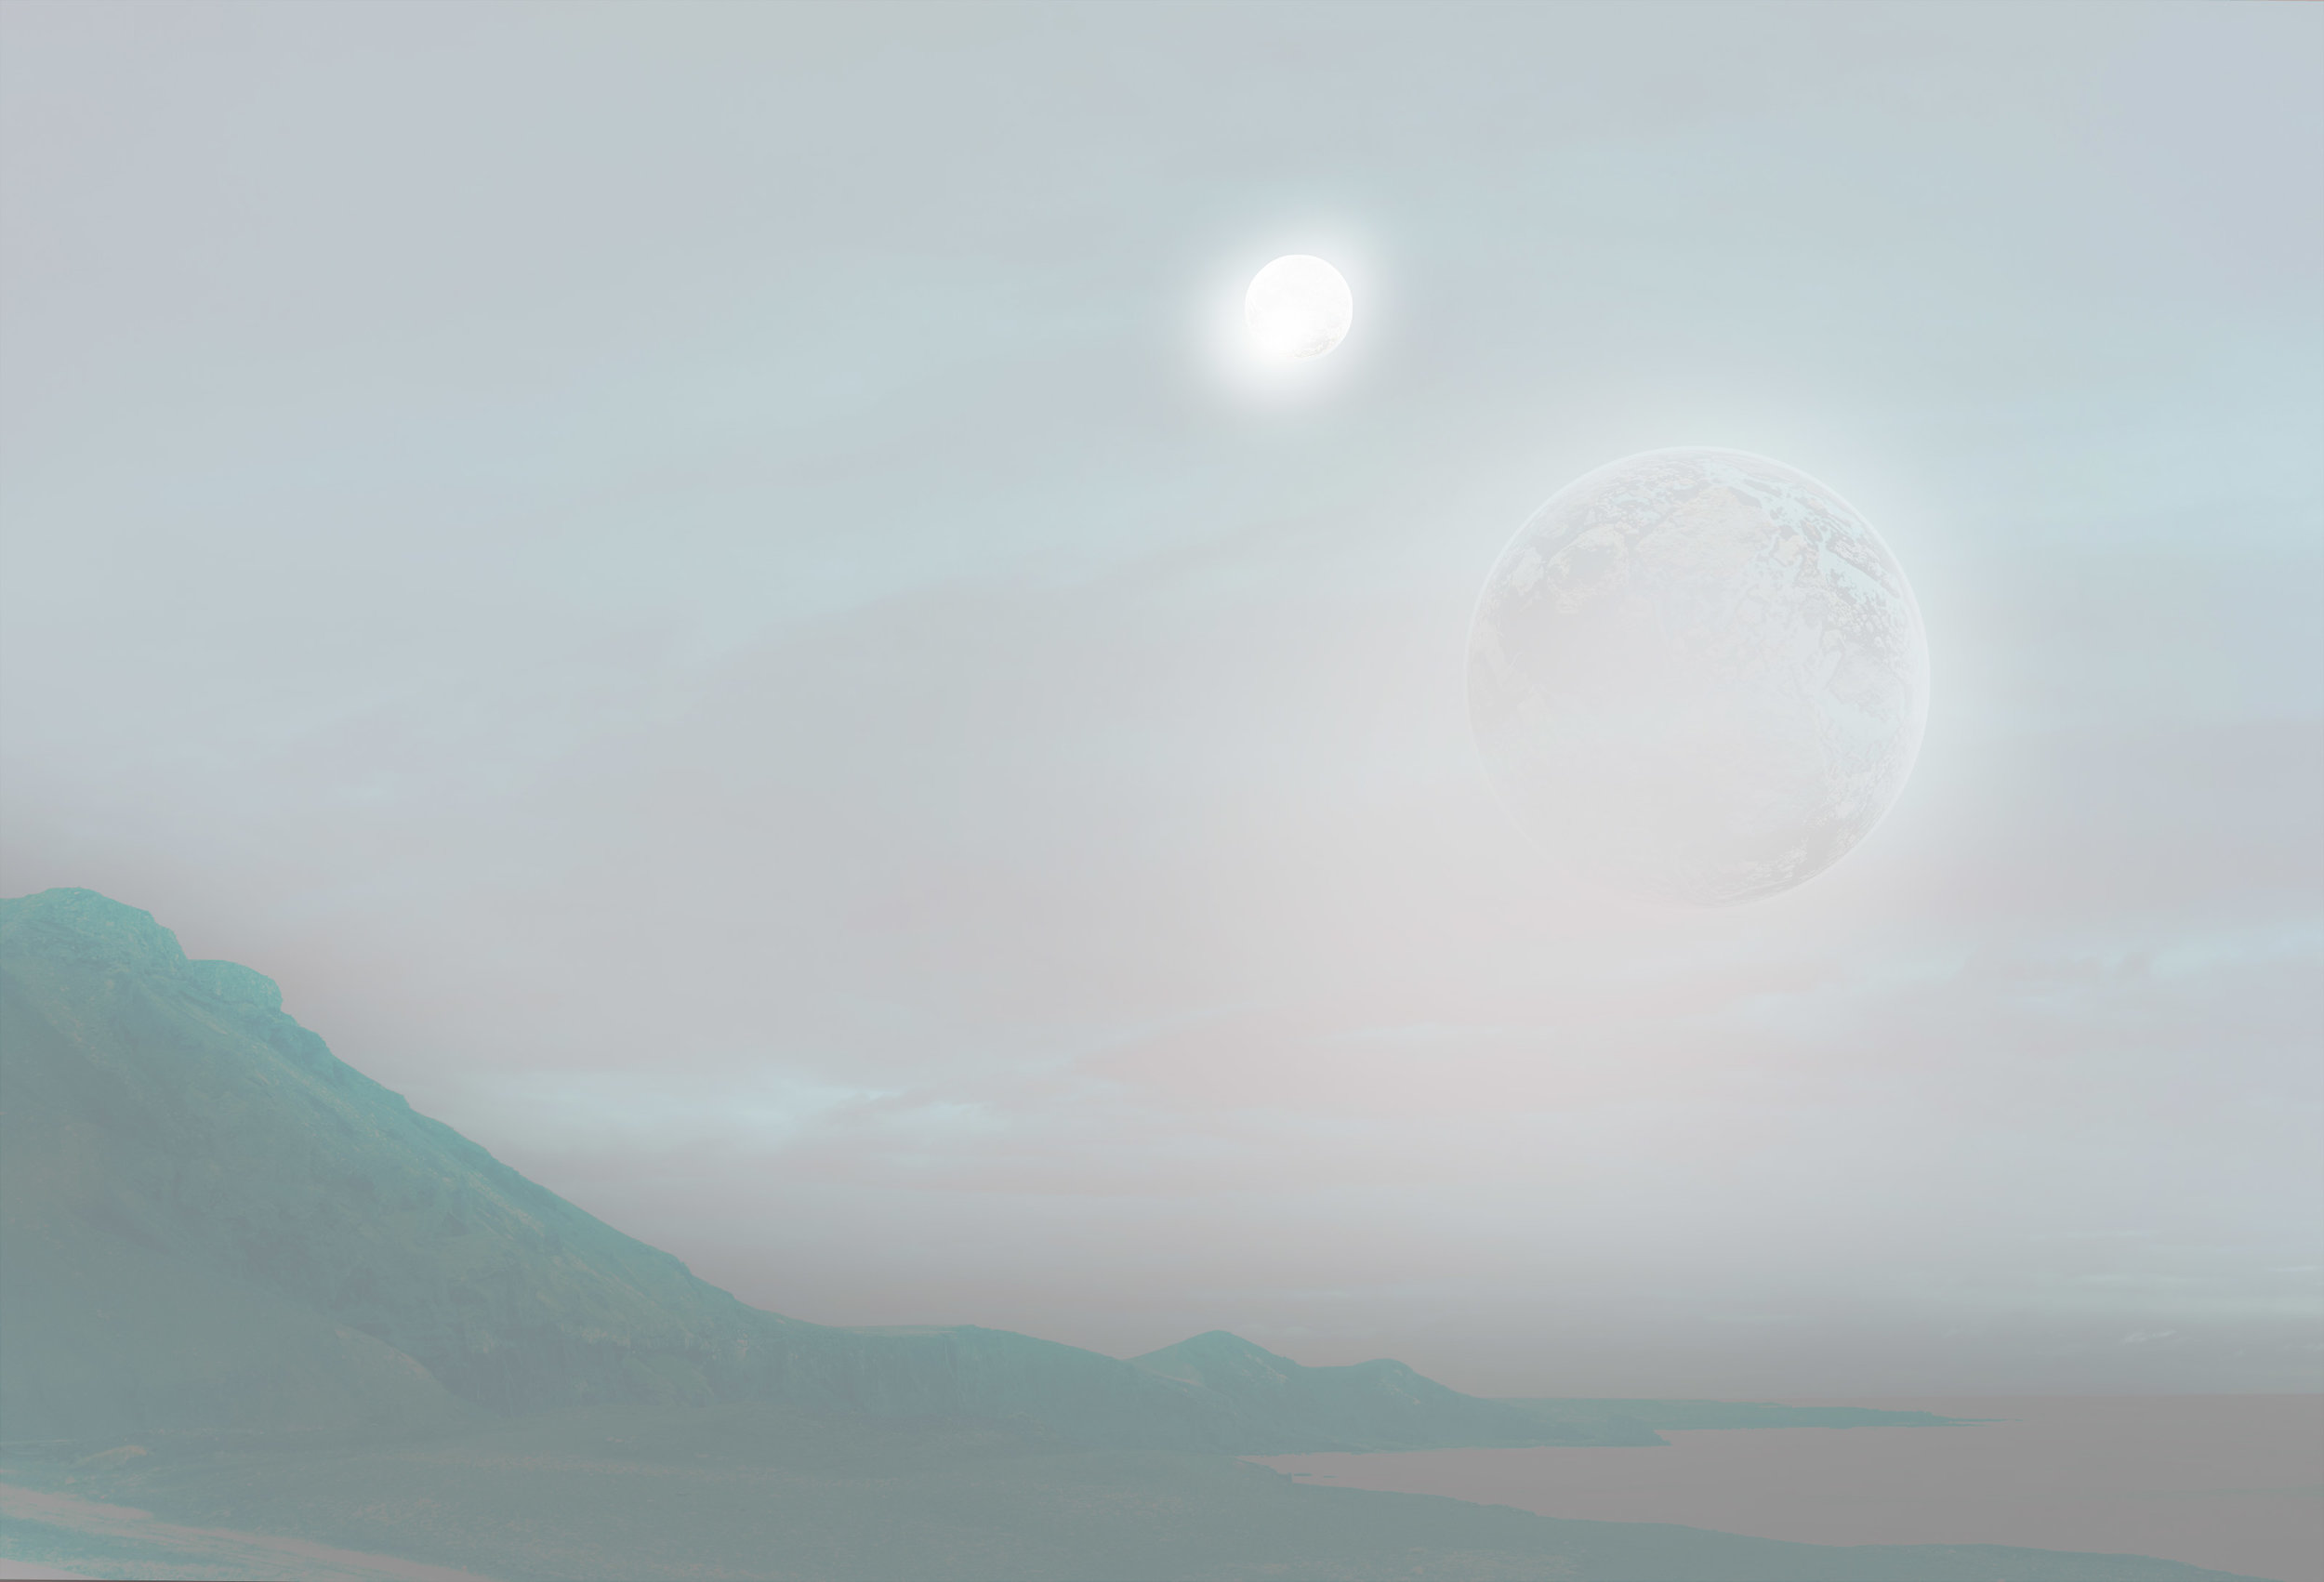 Imagine a fantastic new landscape on one of the Seven new Earth - sized exoplanets that have just been discovered!